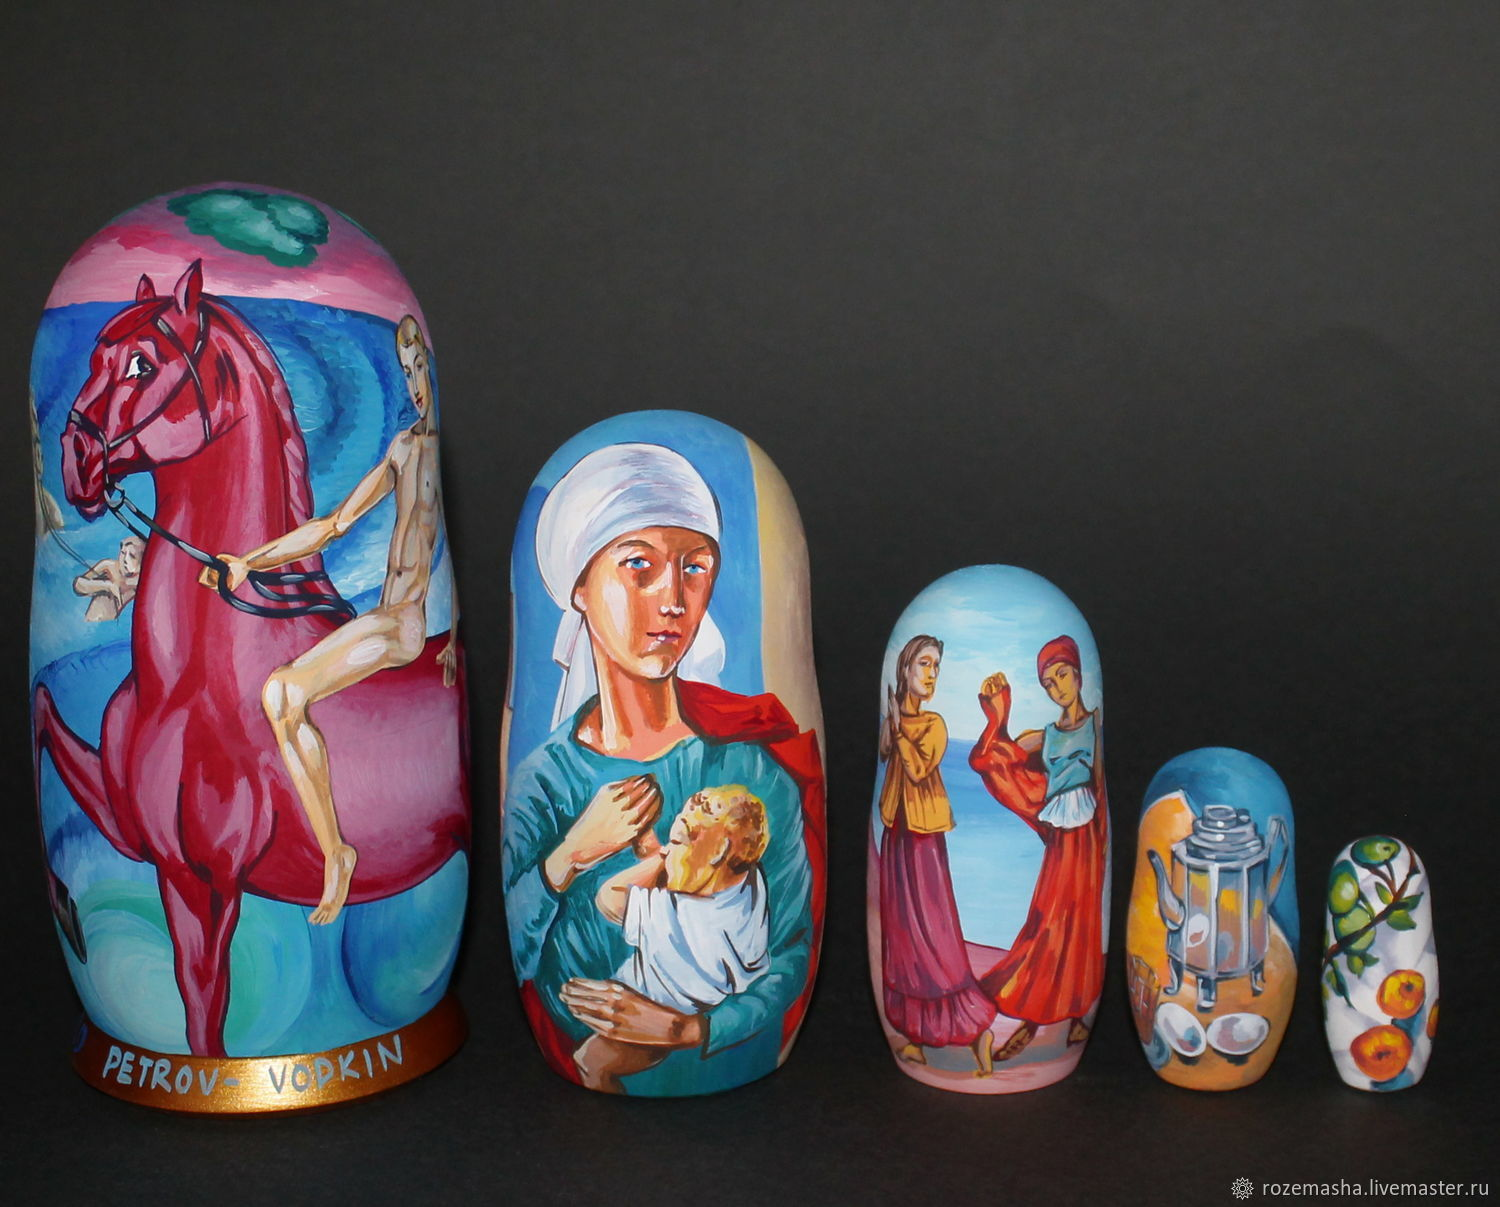 Matryoshka Petrov-Vodkin and Russian avant-garde, Dolls1, St. Petersburg,  Фото №1